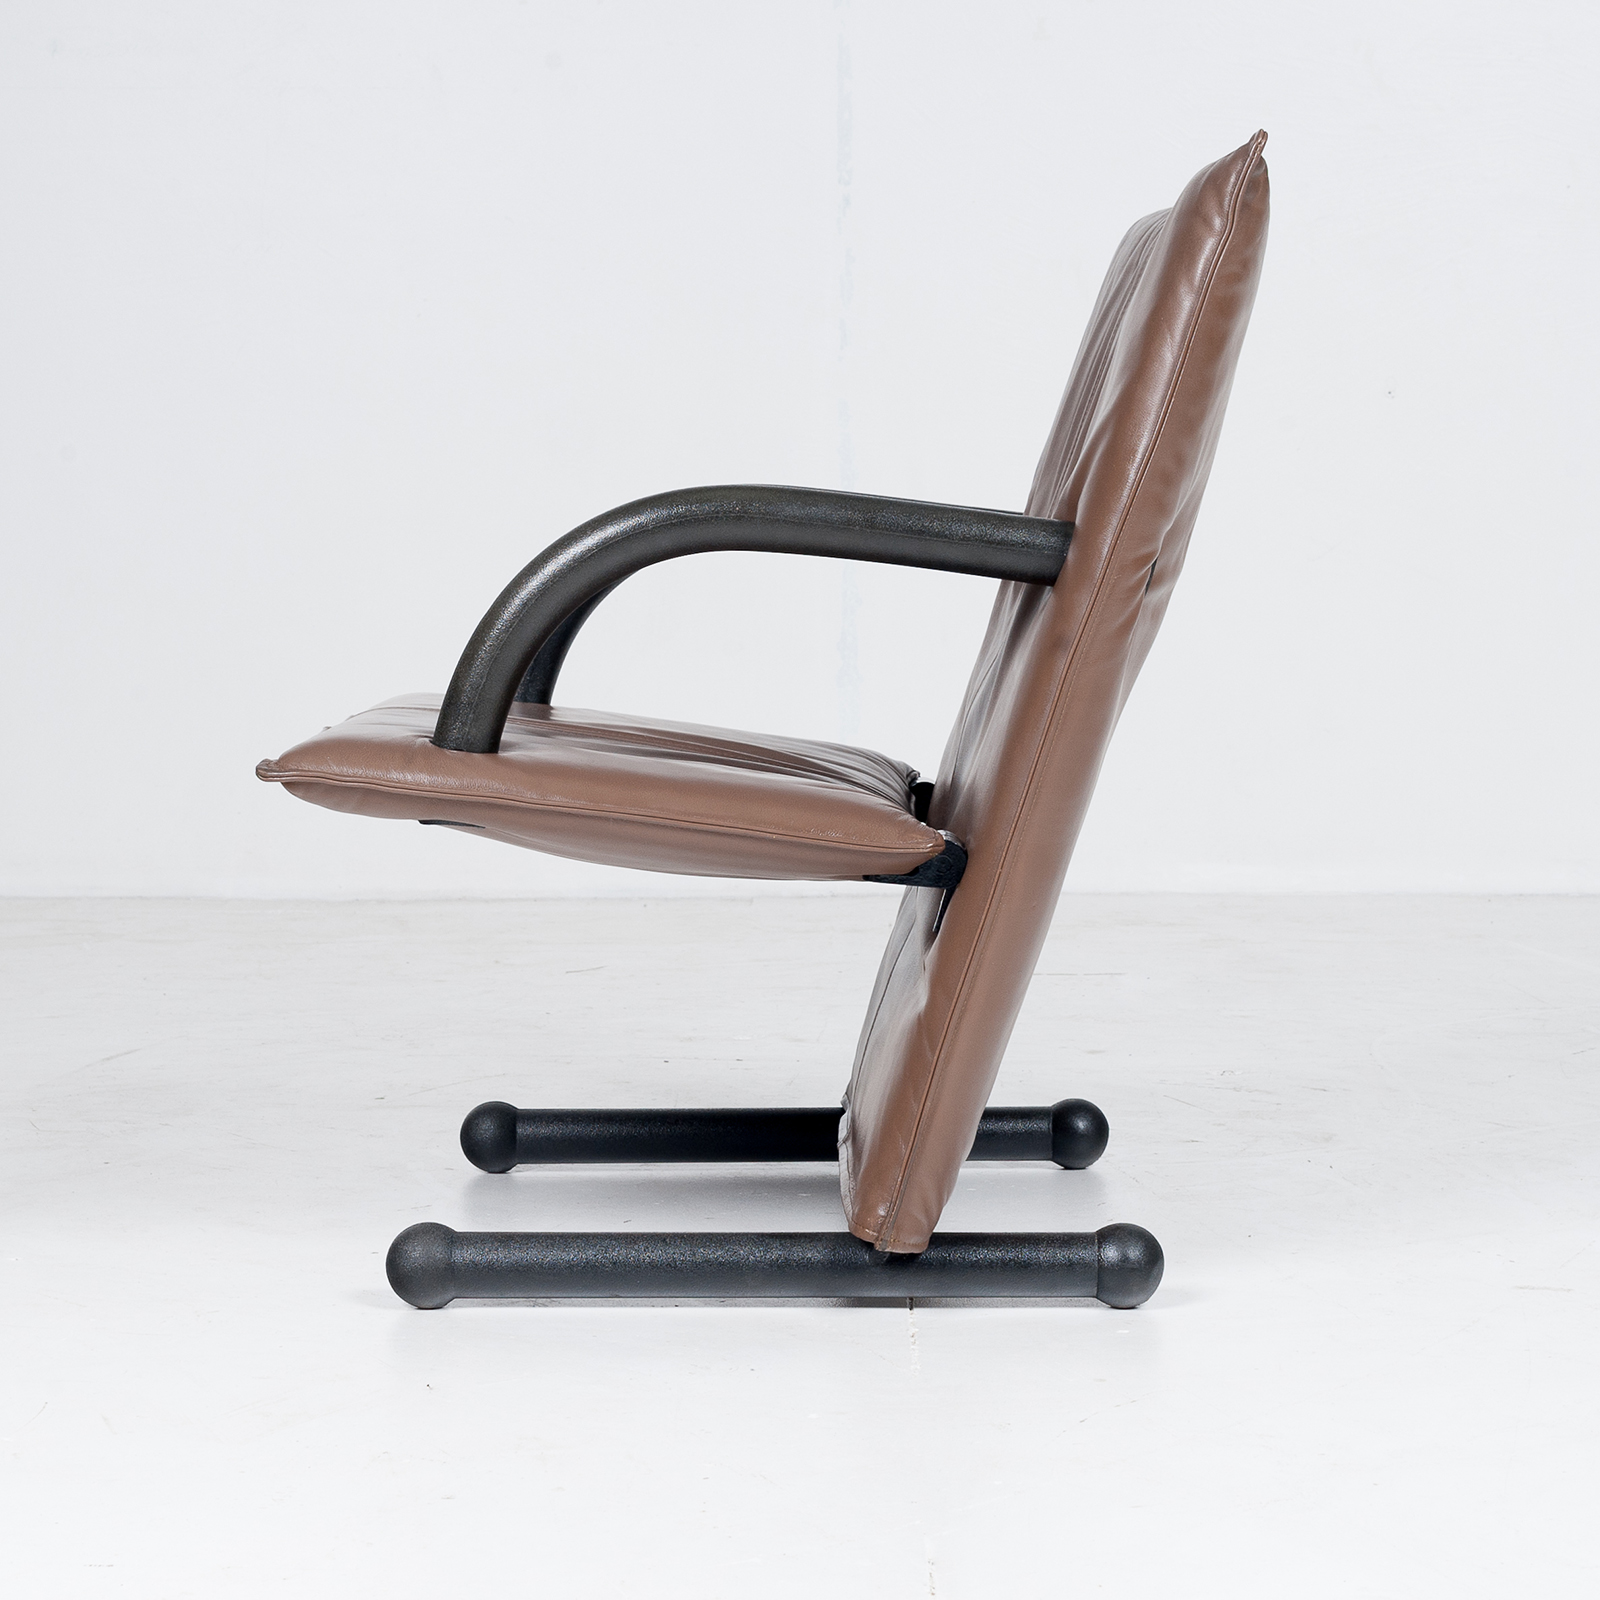 Model T Line Chair In By Burkhard Vogtherr For Arflex In Brown Leather, 1980s, Italy70